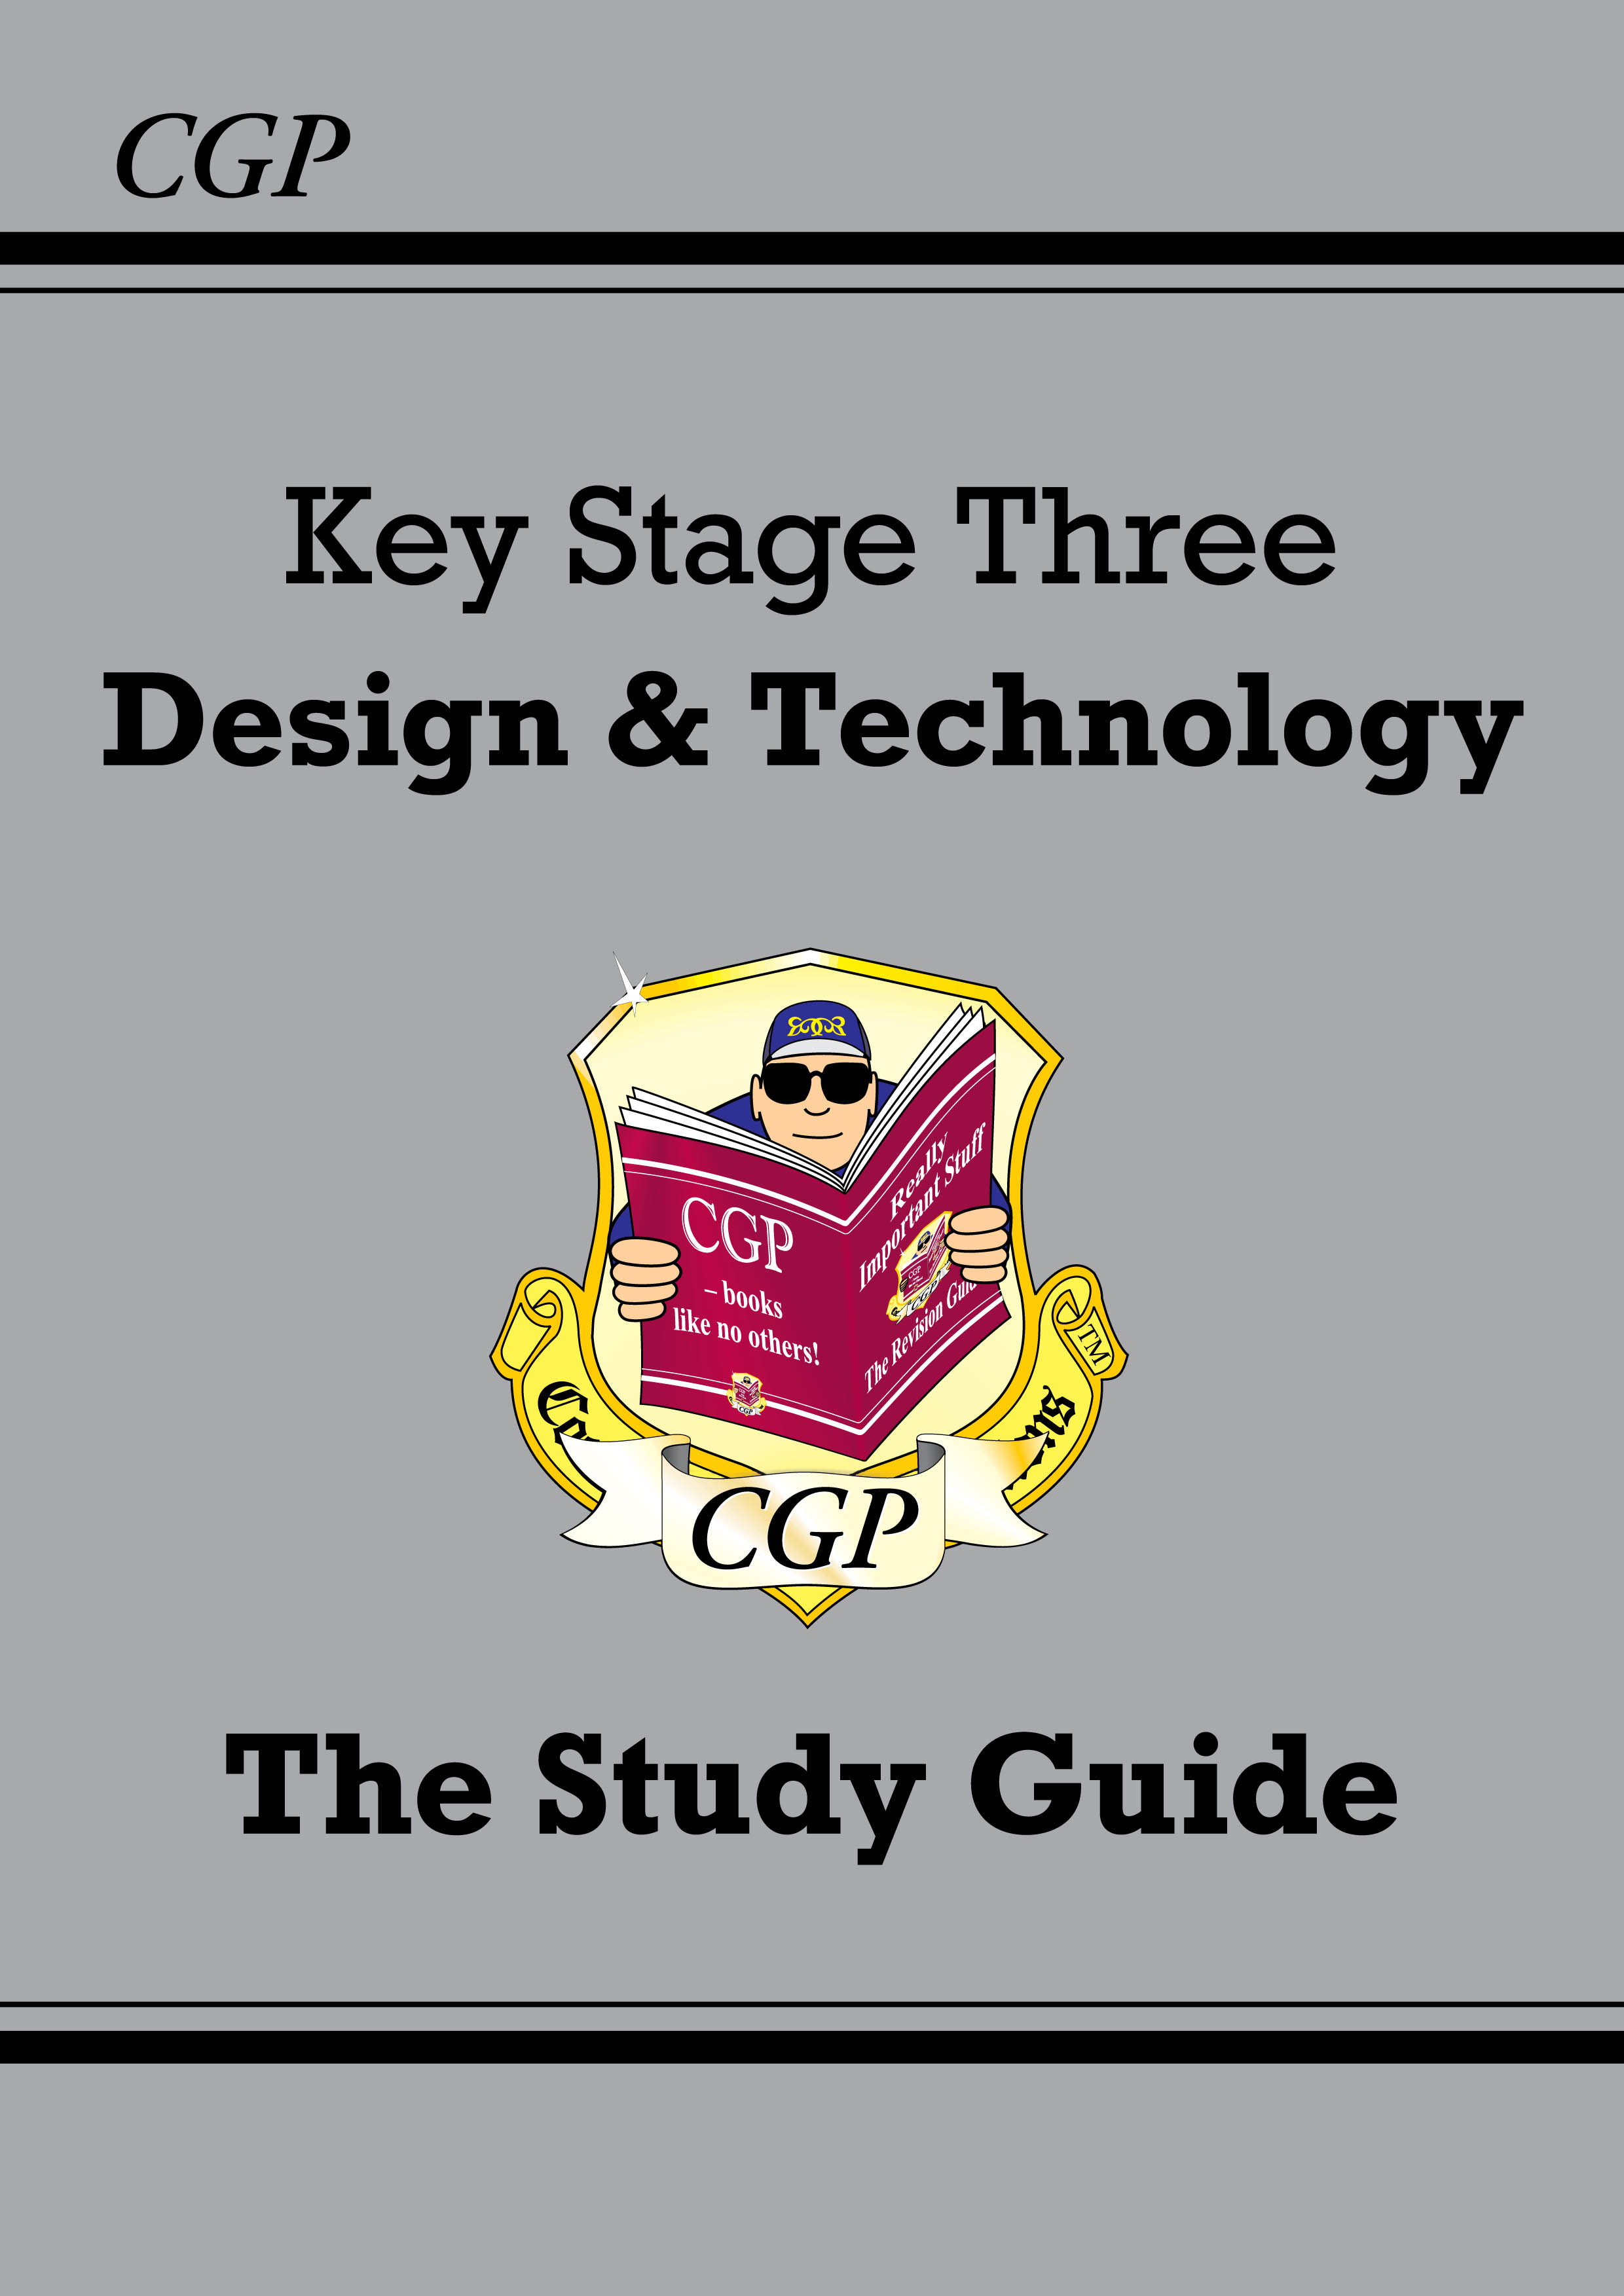 THR33DK - KS3 Design & Technology Study Guide